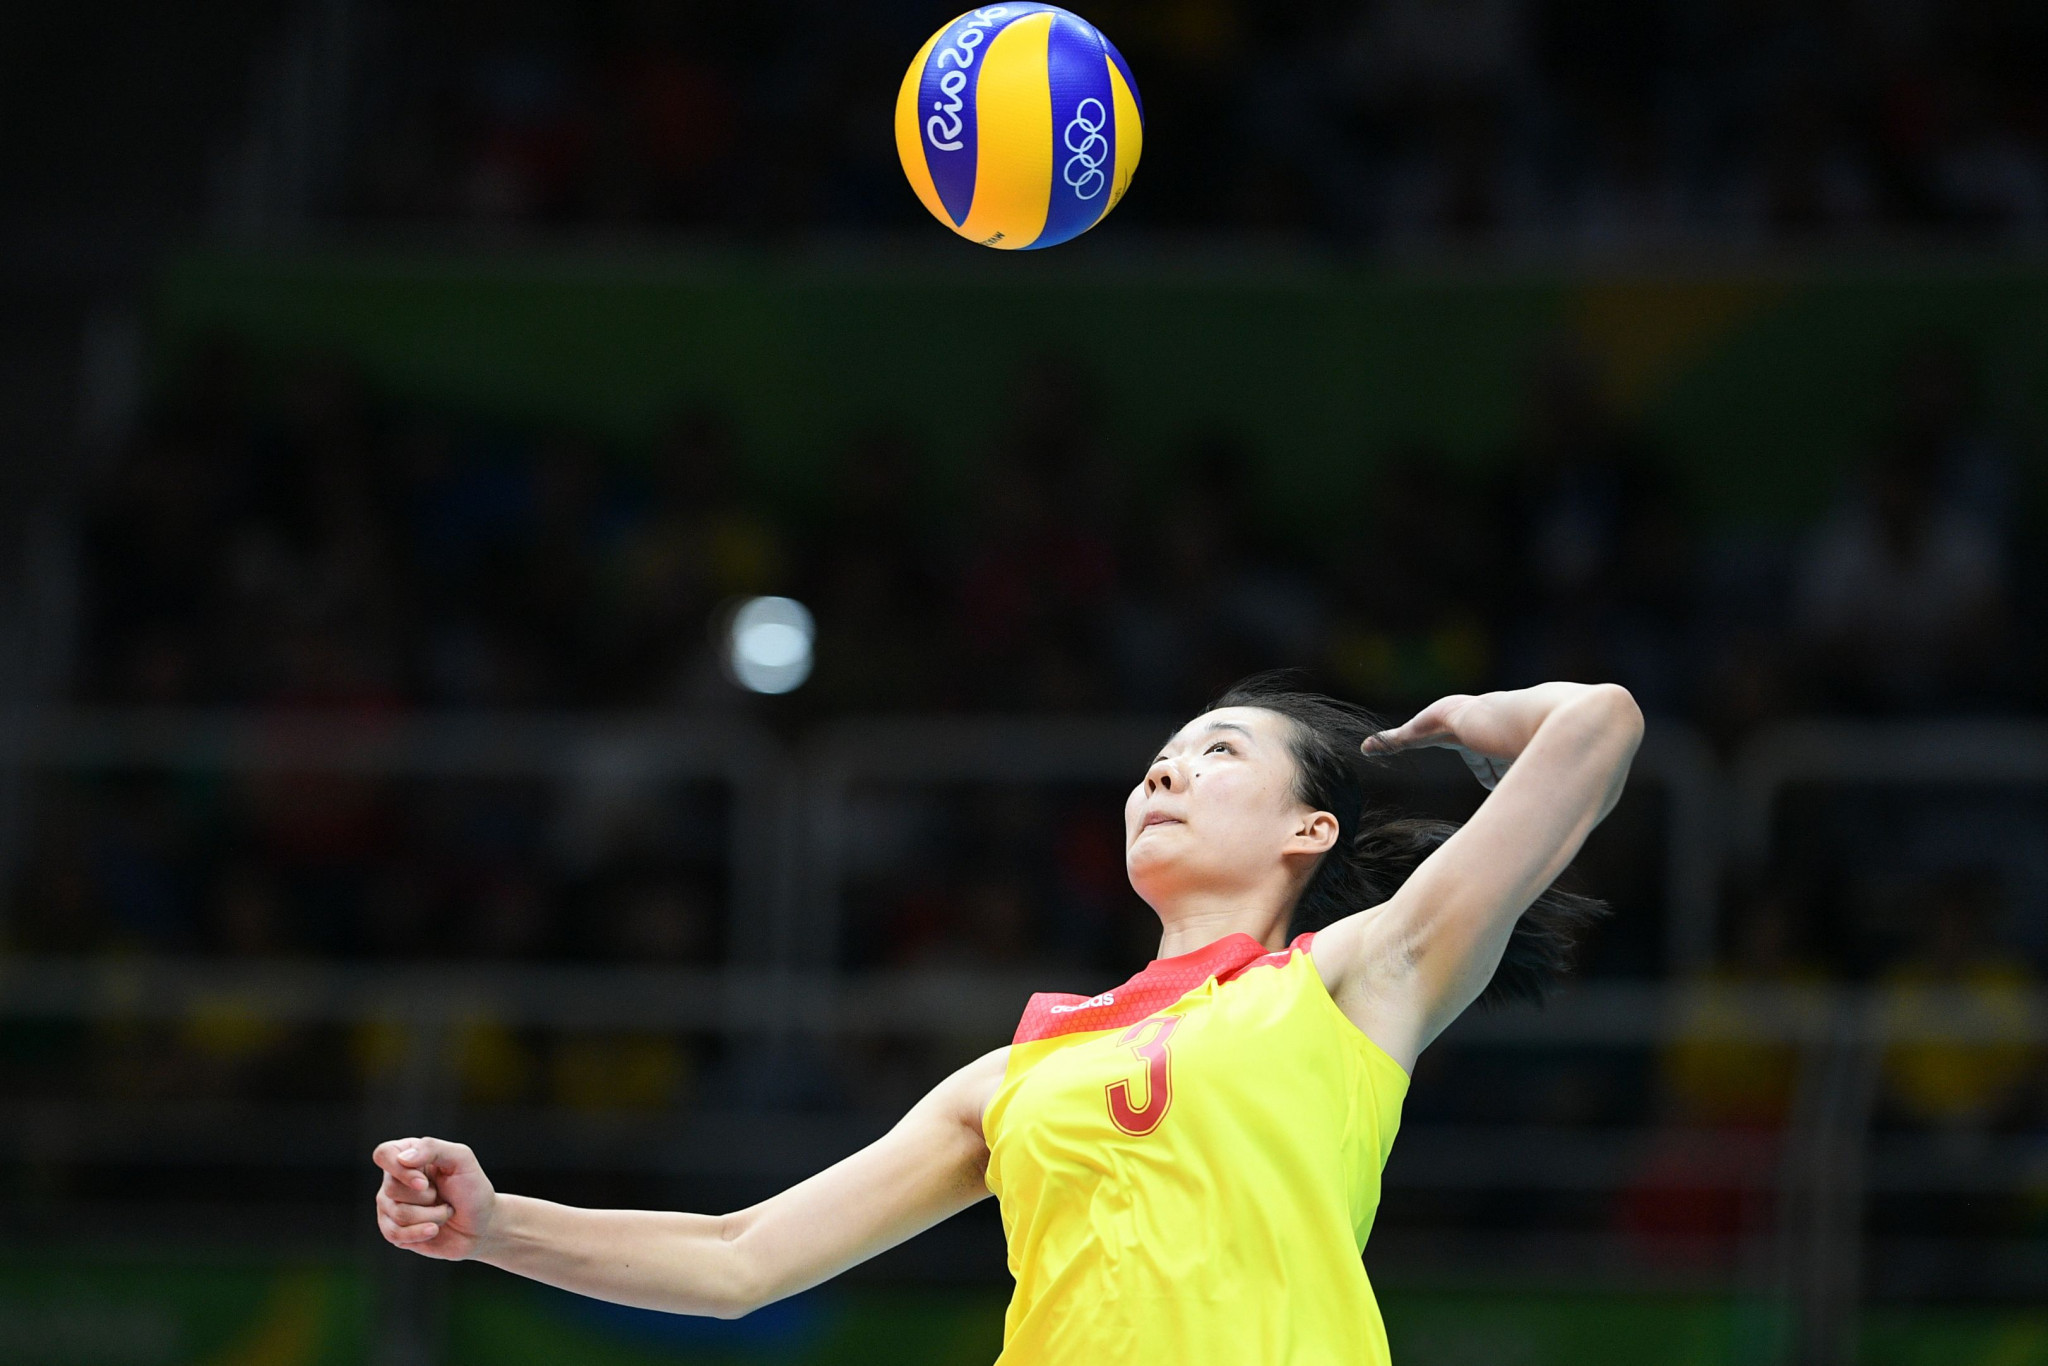 Chinese volleyball player Yang Fangxu has been given a four-year doping ban ©Getty Images